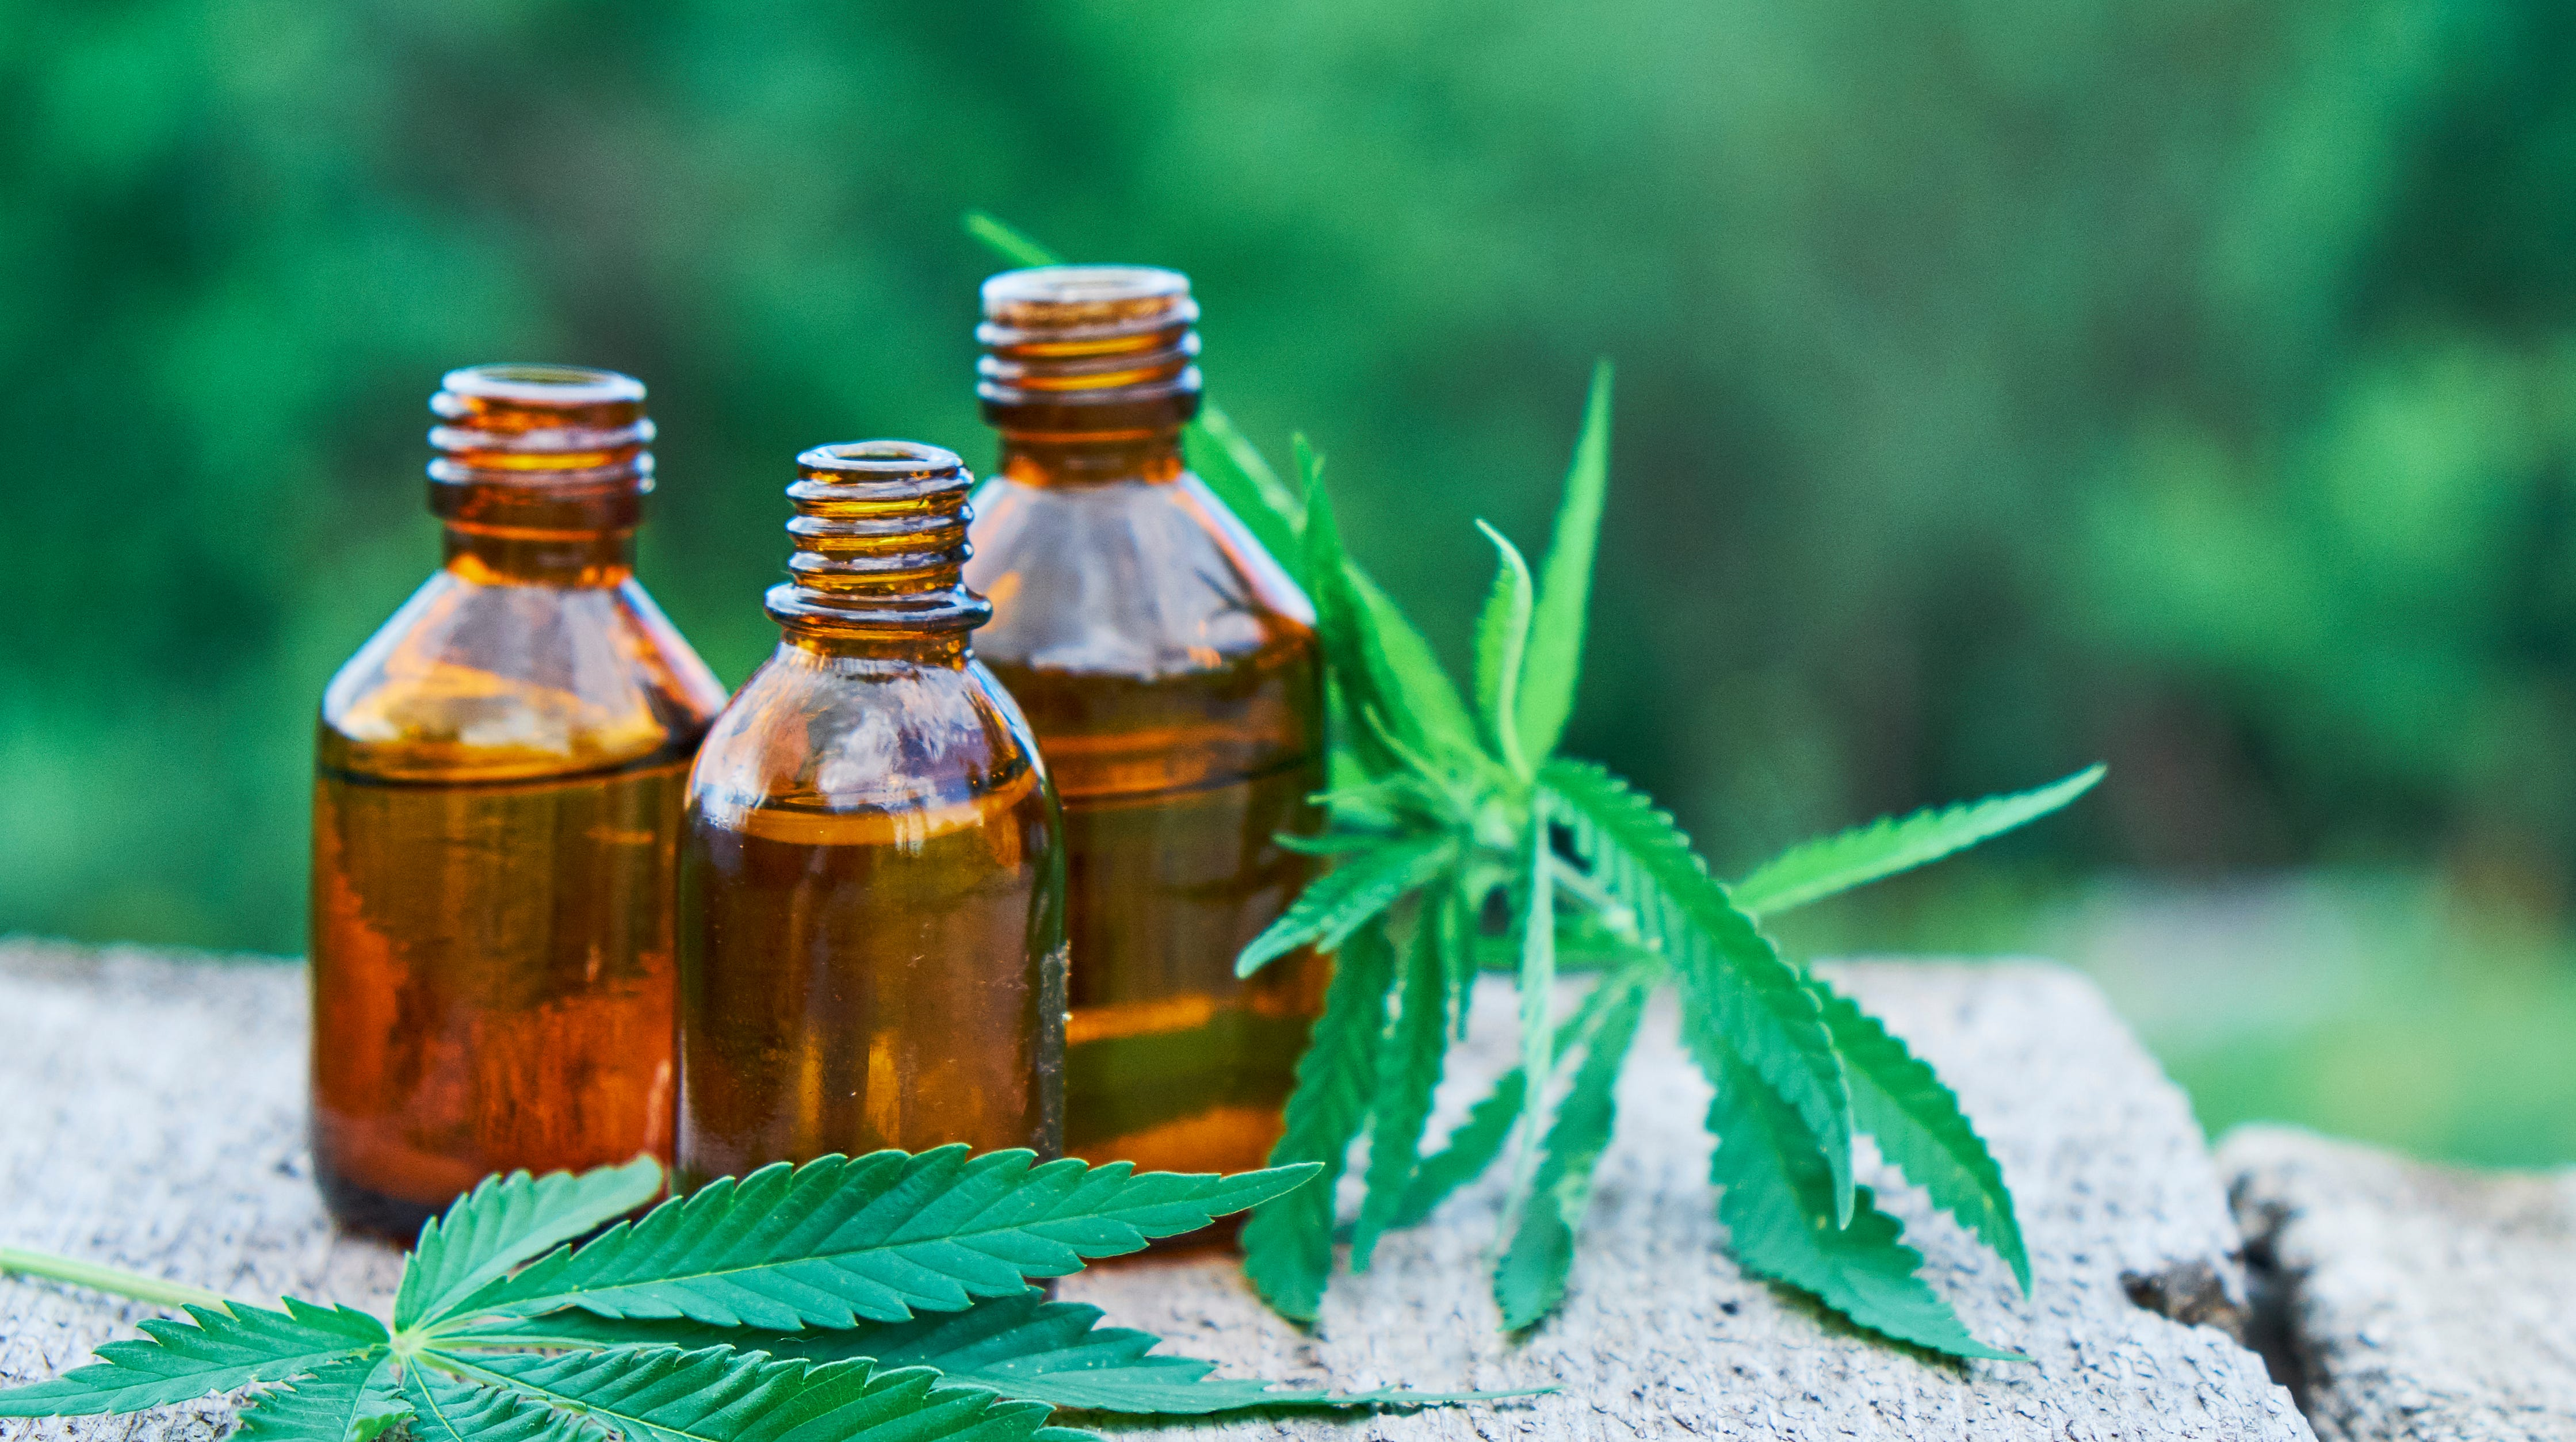 Cannabis oil extracts in jars.